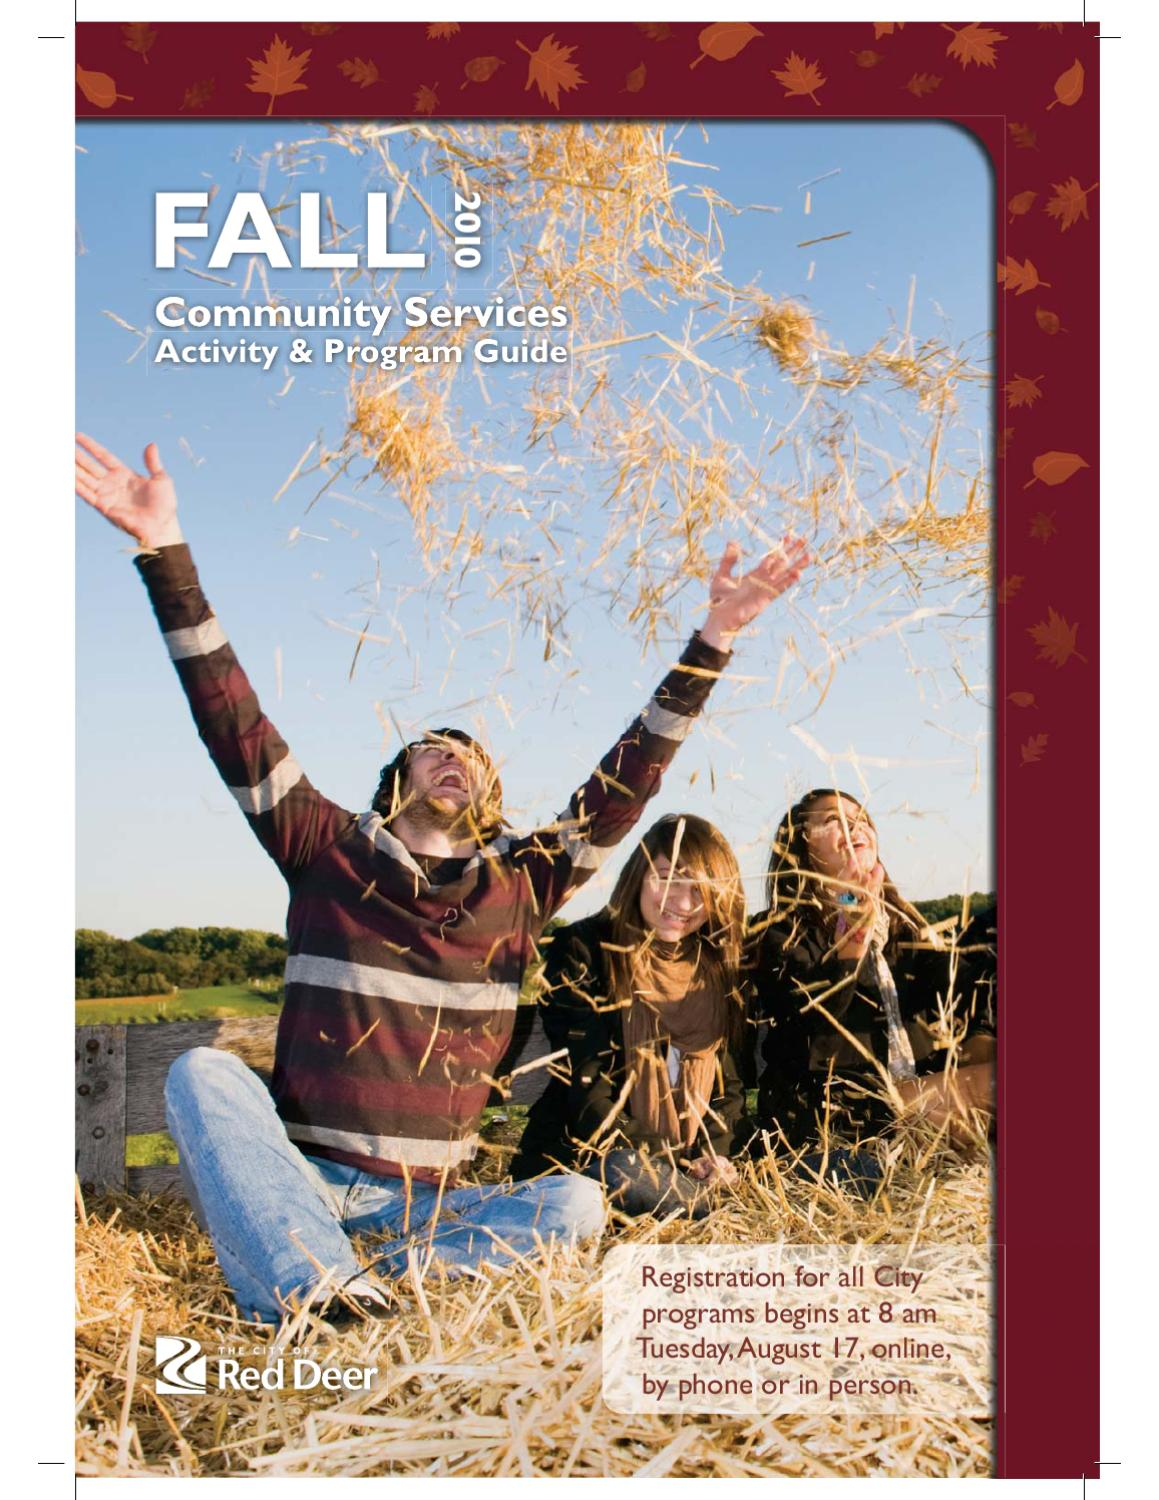 Fall Activity Guide 2010 By The City Of Red Deer  Issuu within Gh Dawe Red Deer